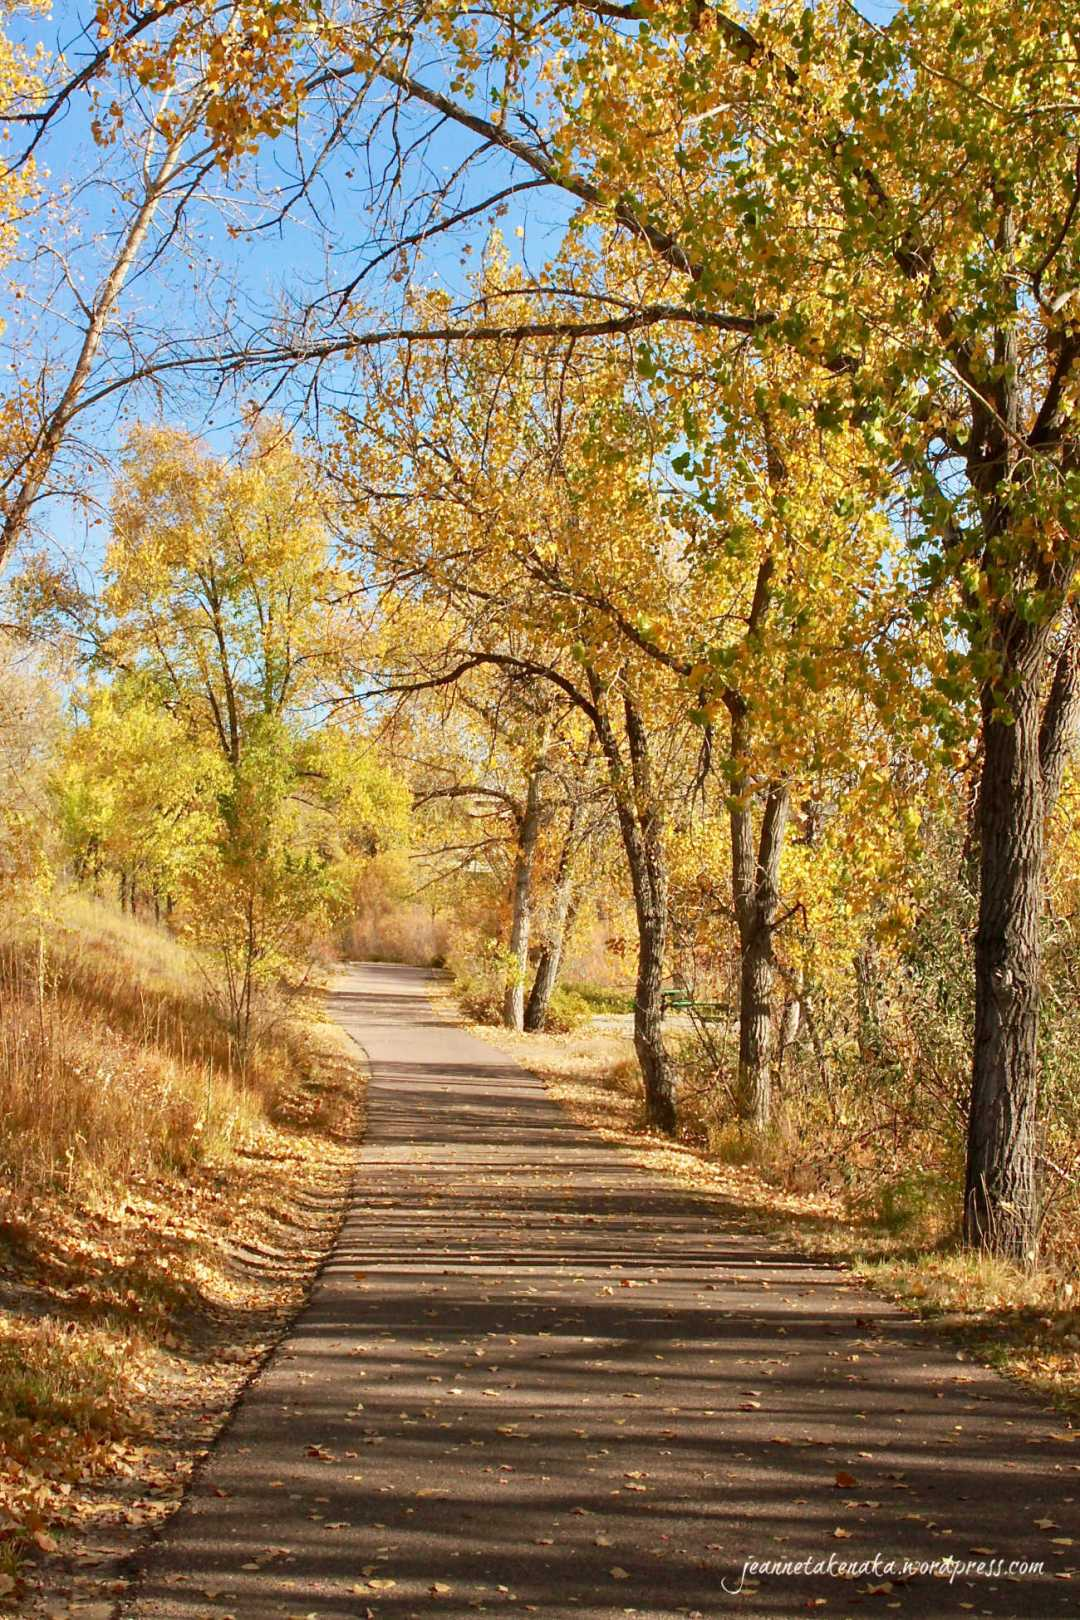 A path lined with autumn colored trees